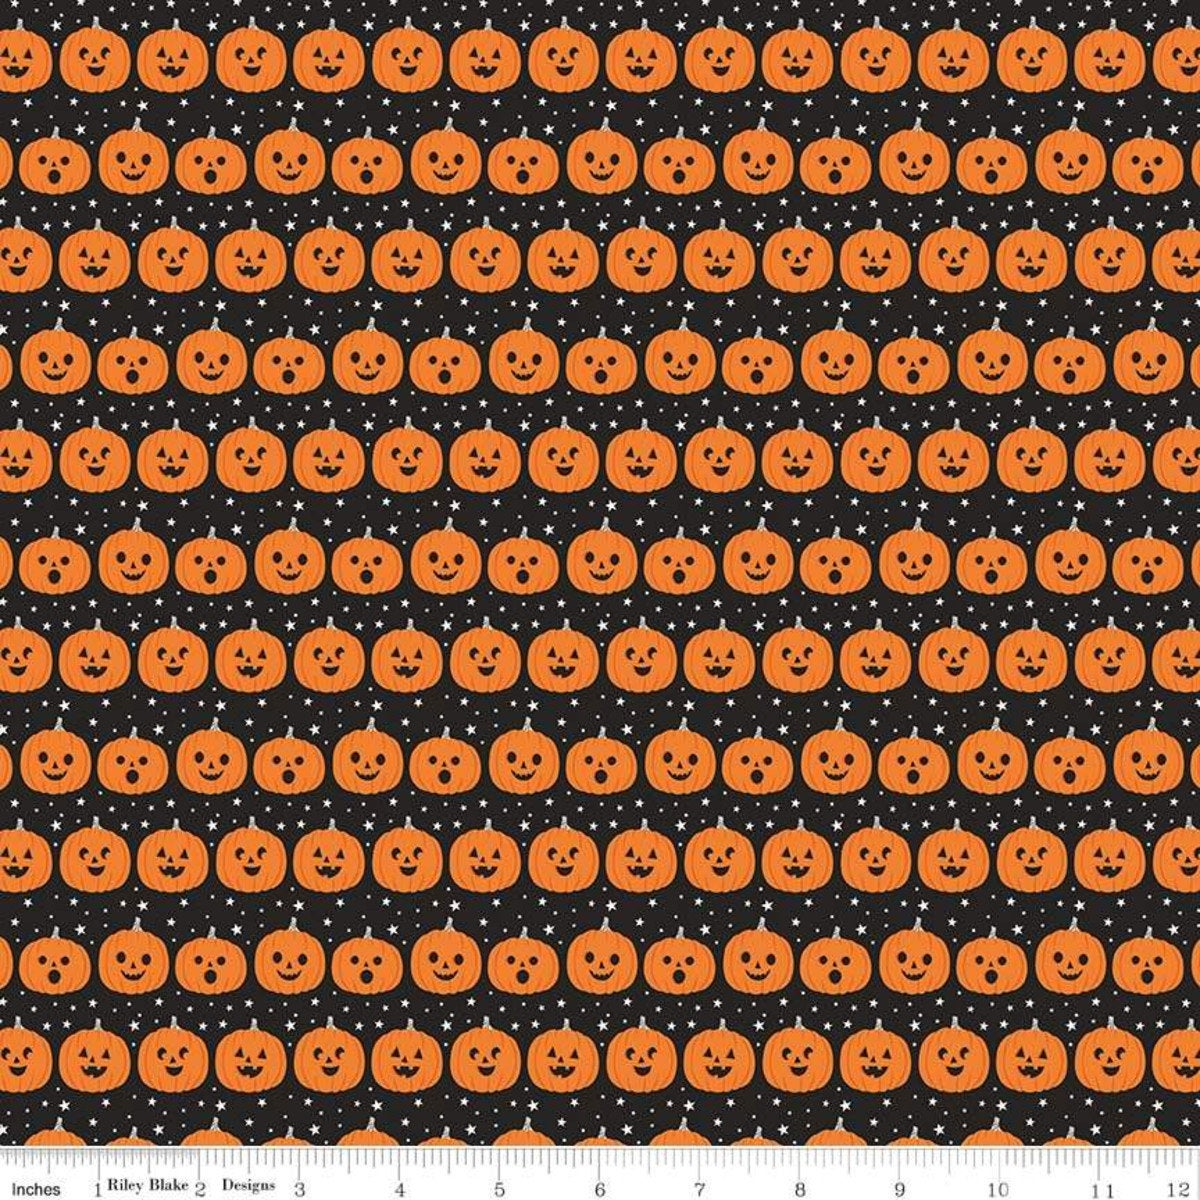 Fab-Boo-Lous for Riley Blake - Pumpkins Black - Sold by the Yard and Cut Continuous - Ships Today